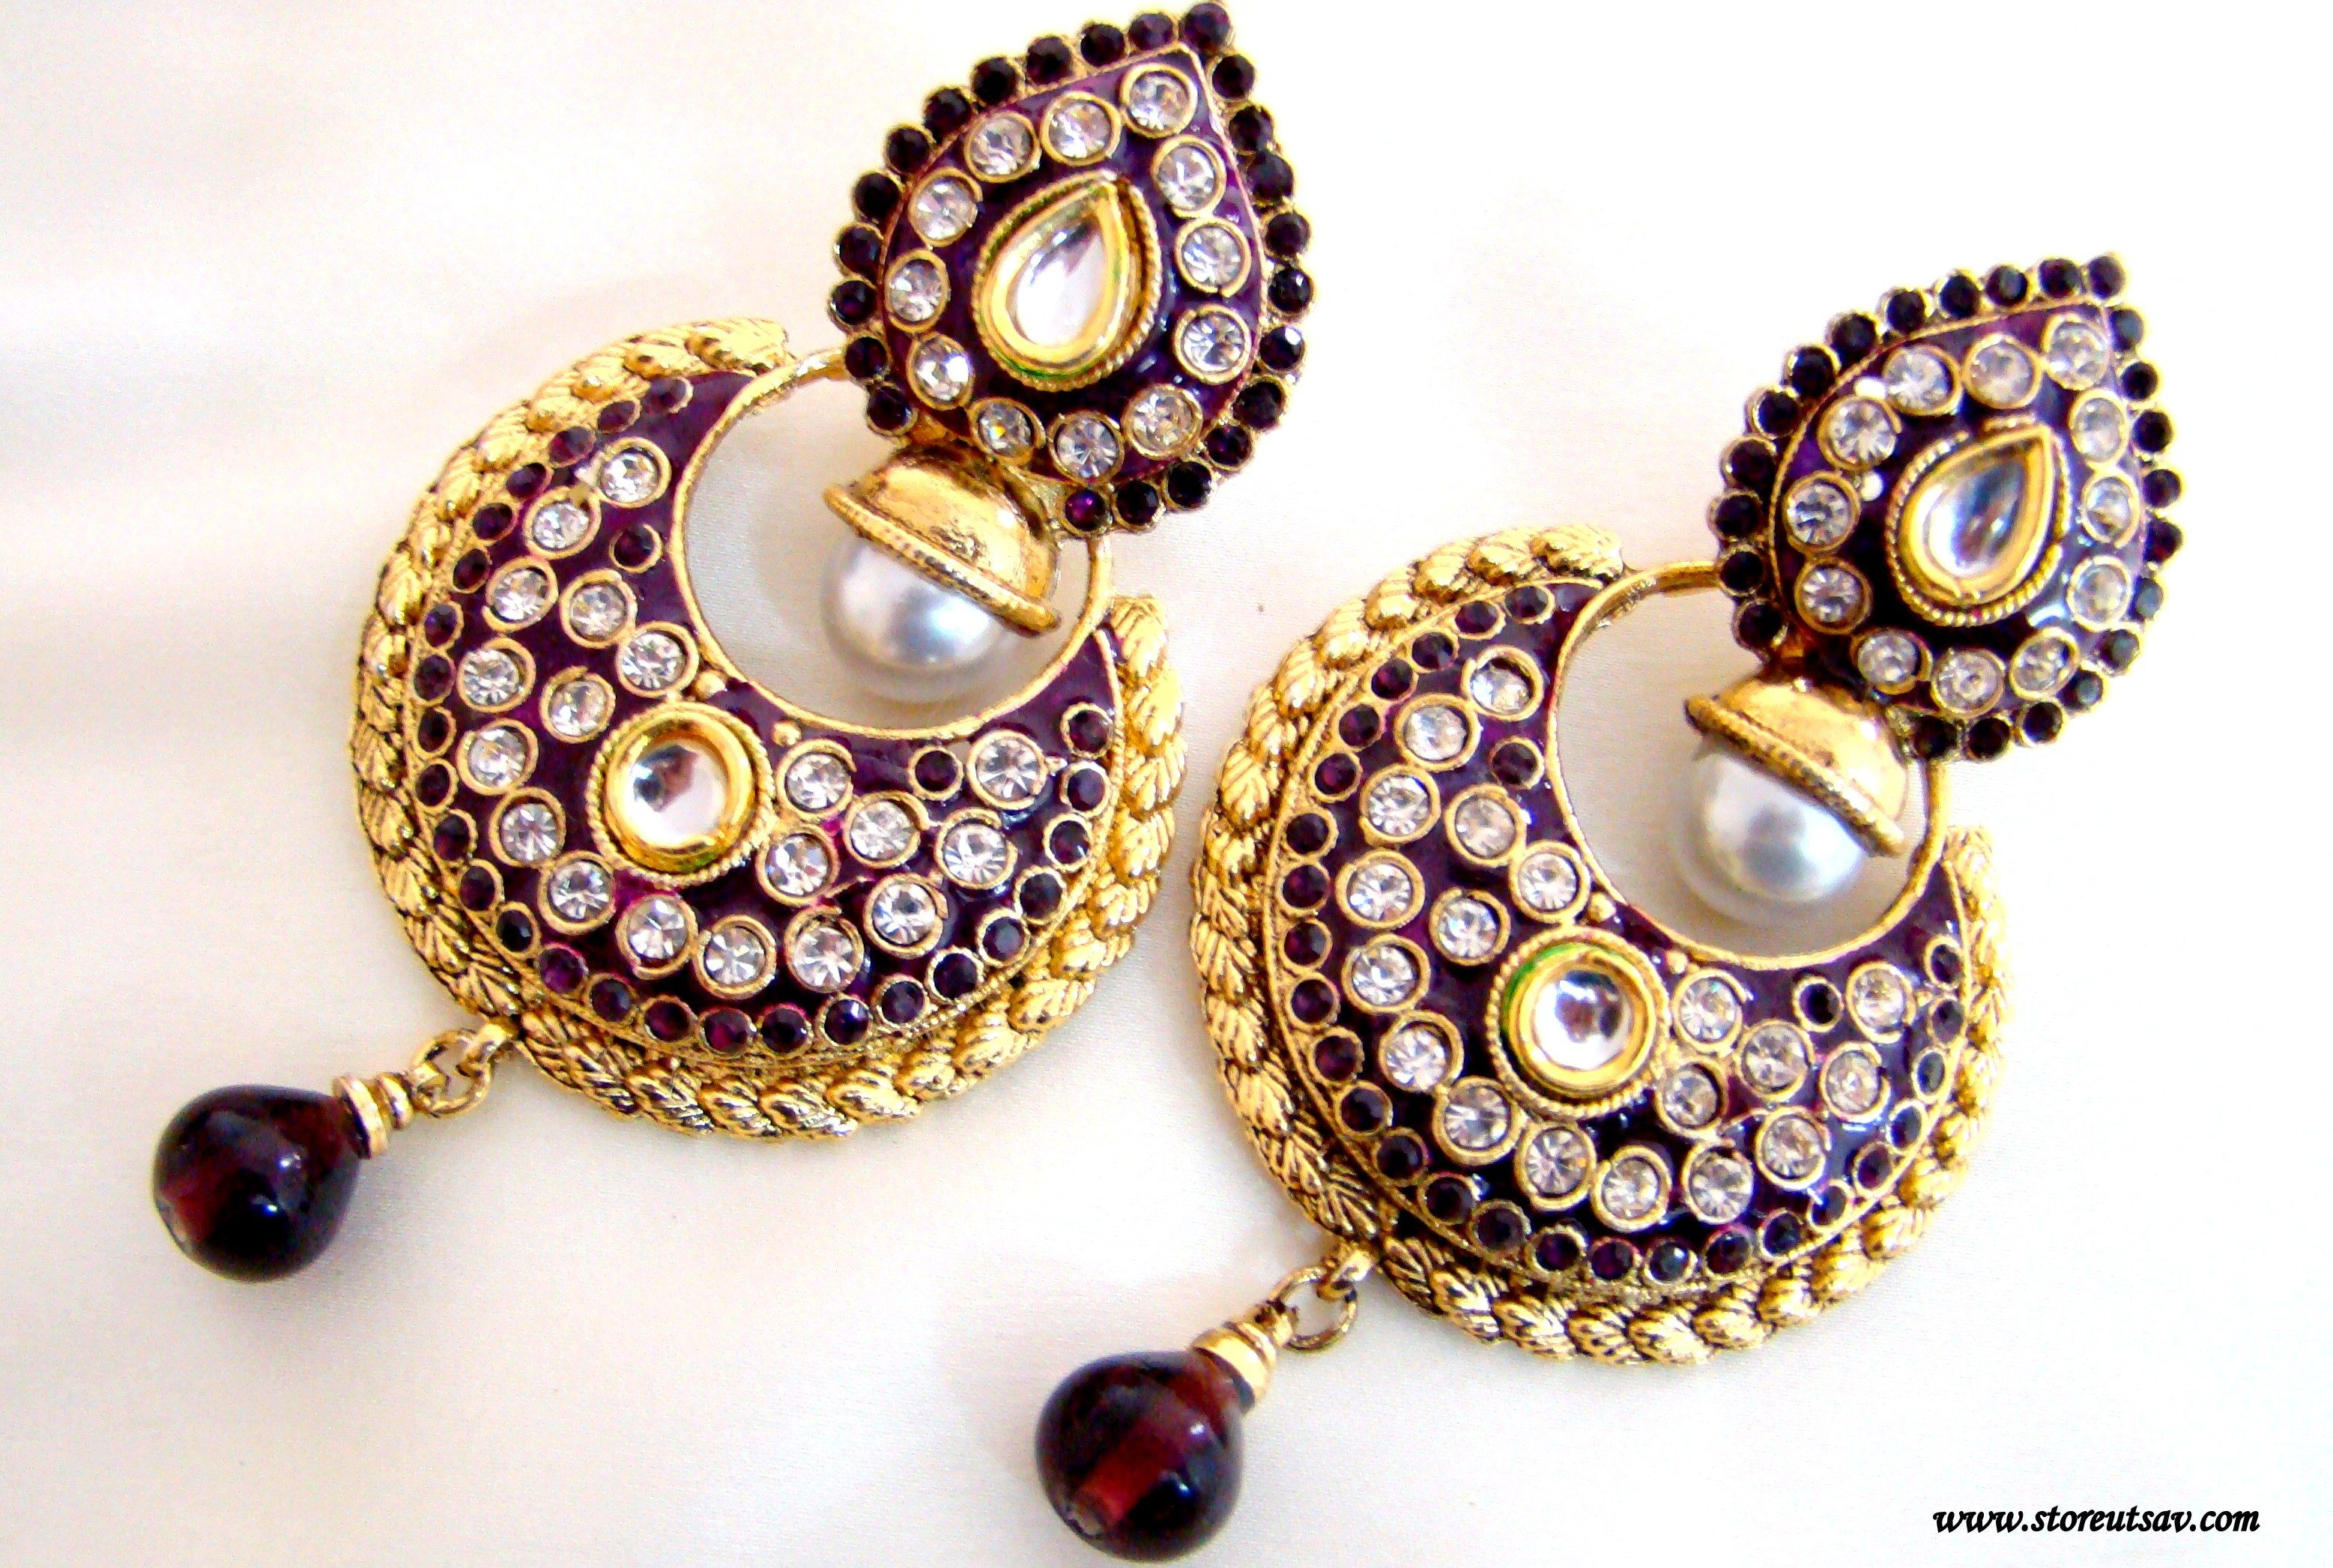 sukkhi cz chandelier shopping rajasthani buy peacock online oxidize plated studded earrings